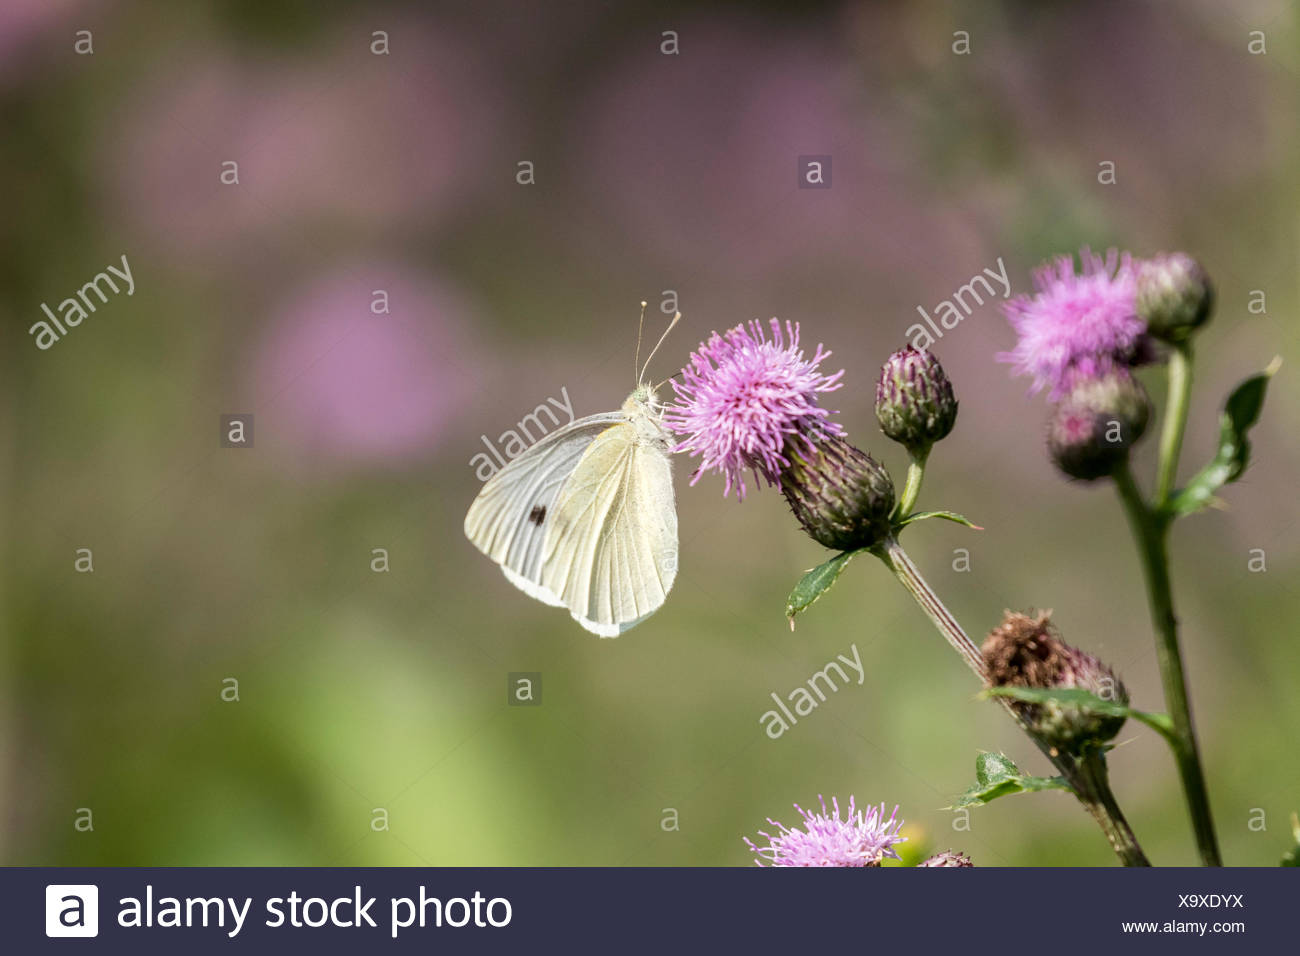 Cabbage White (Pieris rapae) on Canada Thistle (Cirsium arvense), both the butterfly and thistle were introduced to Canada - Stock Image